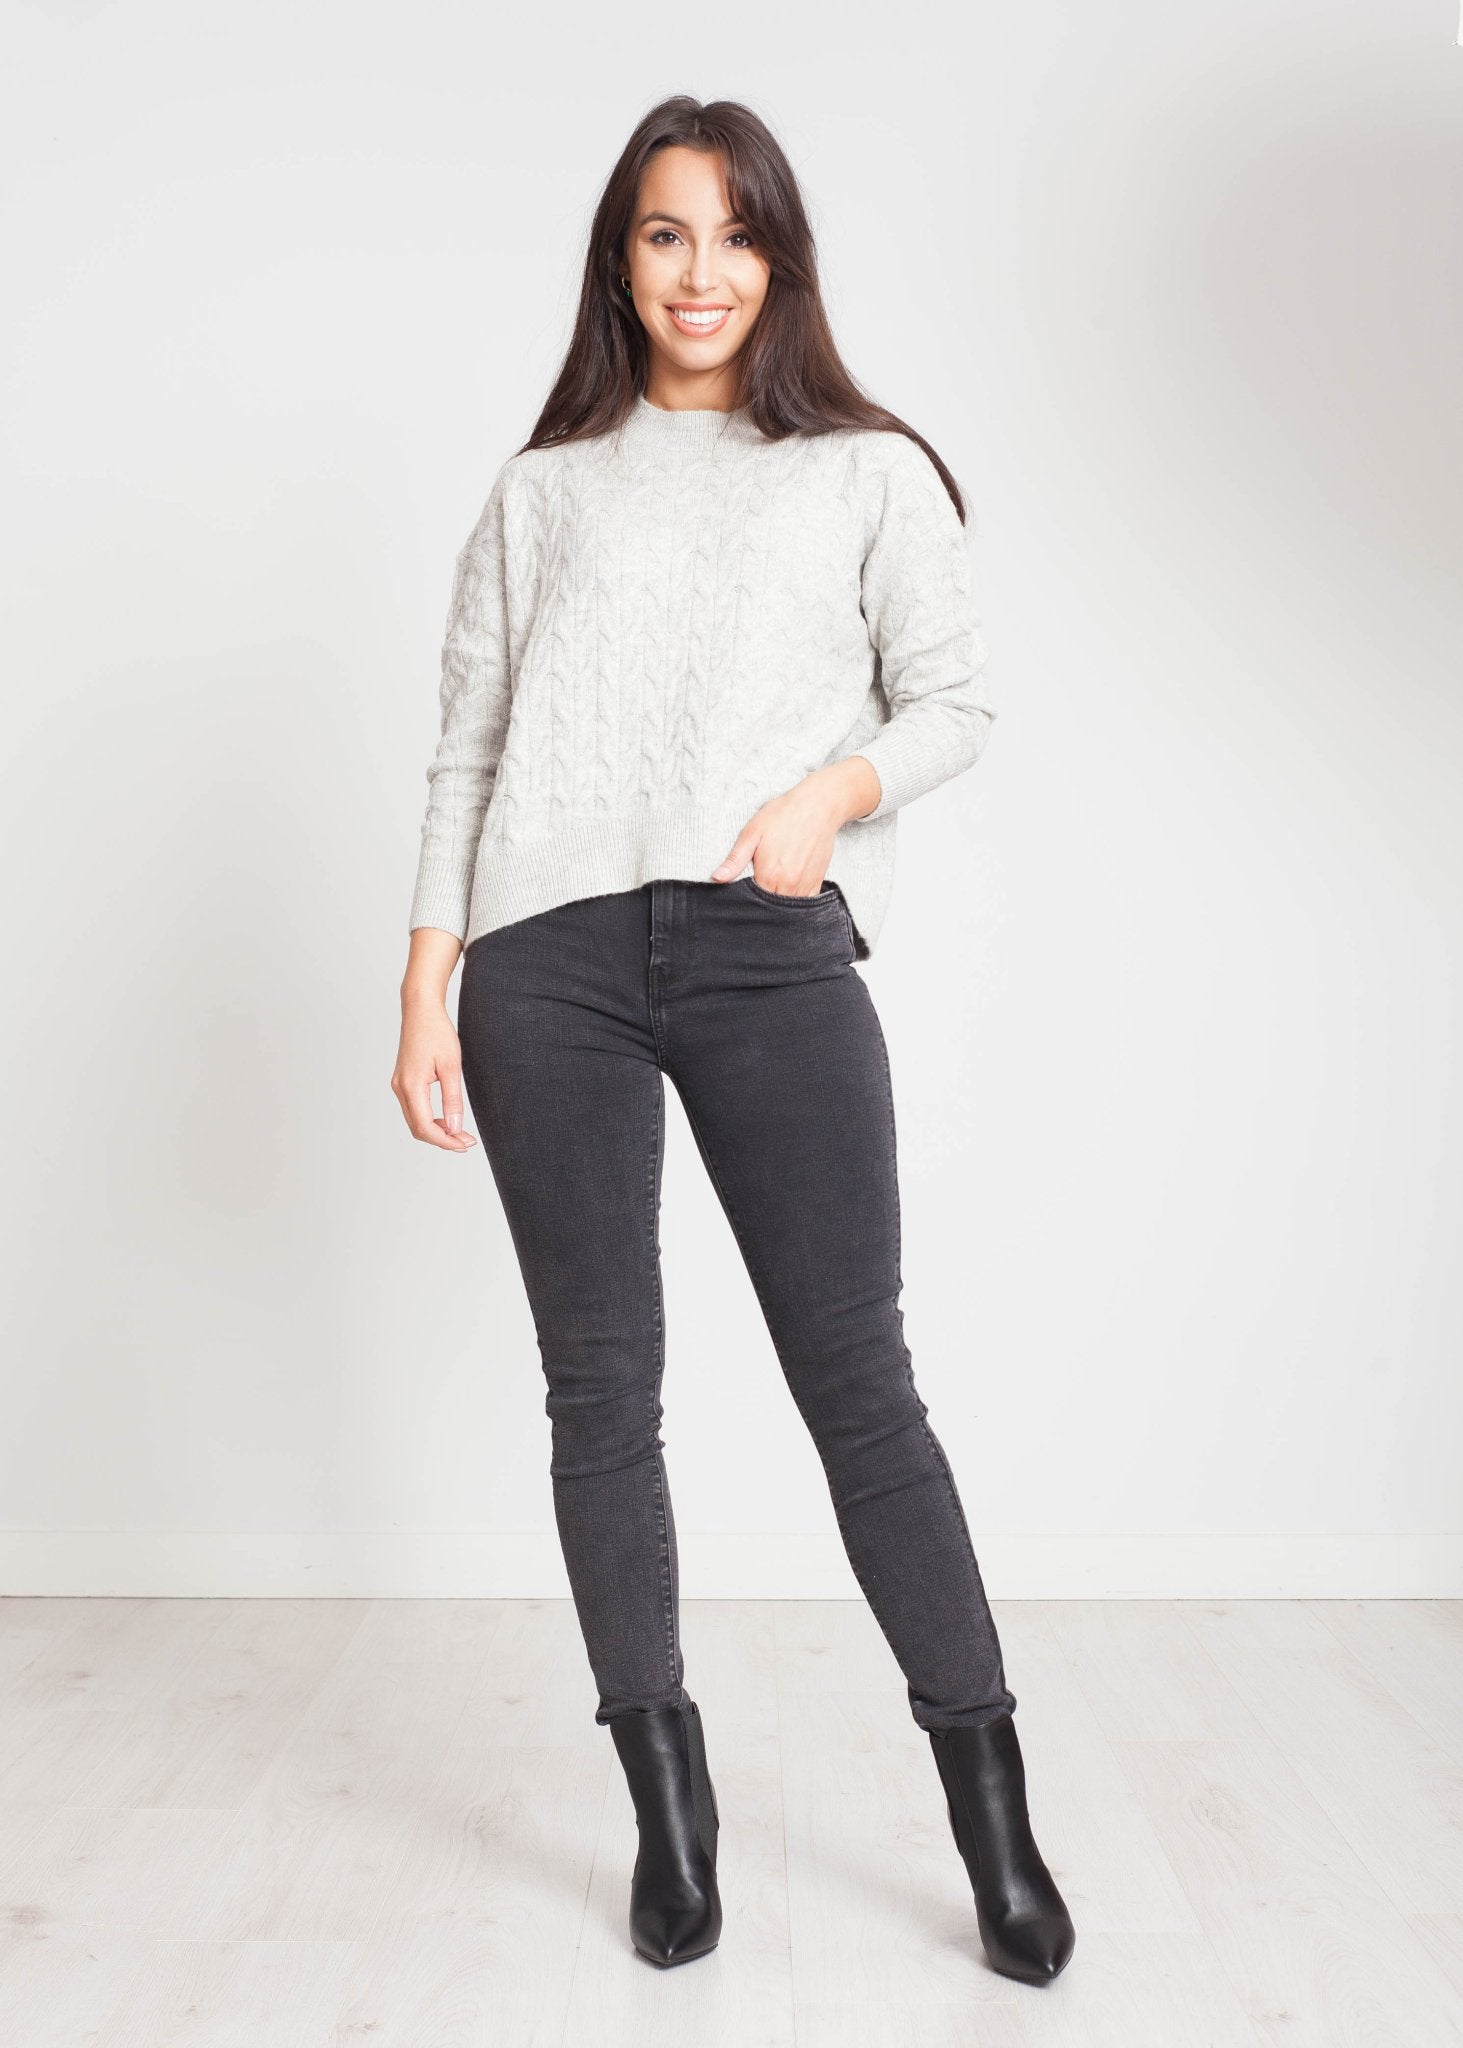 Heidi Cable Knit Jumper In Grey - The Walk in Wardrobe